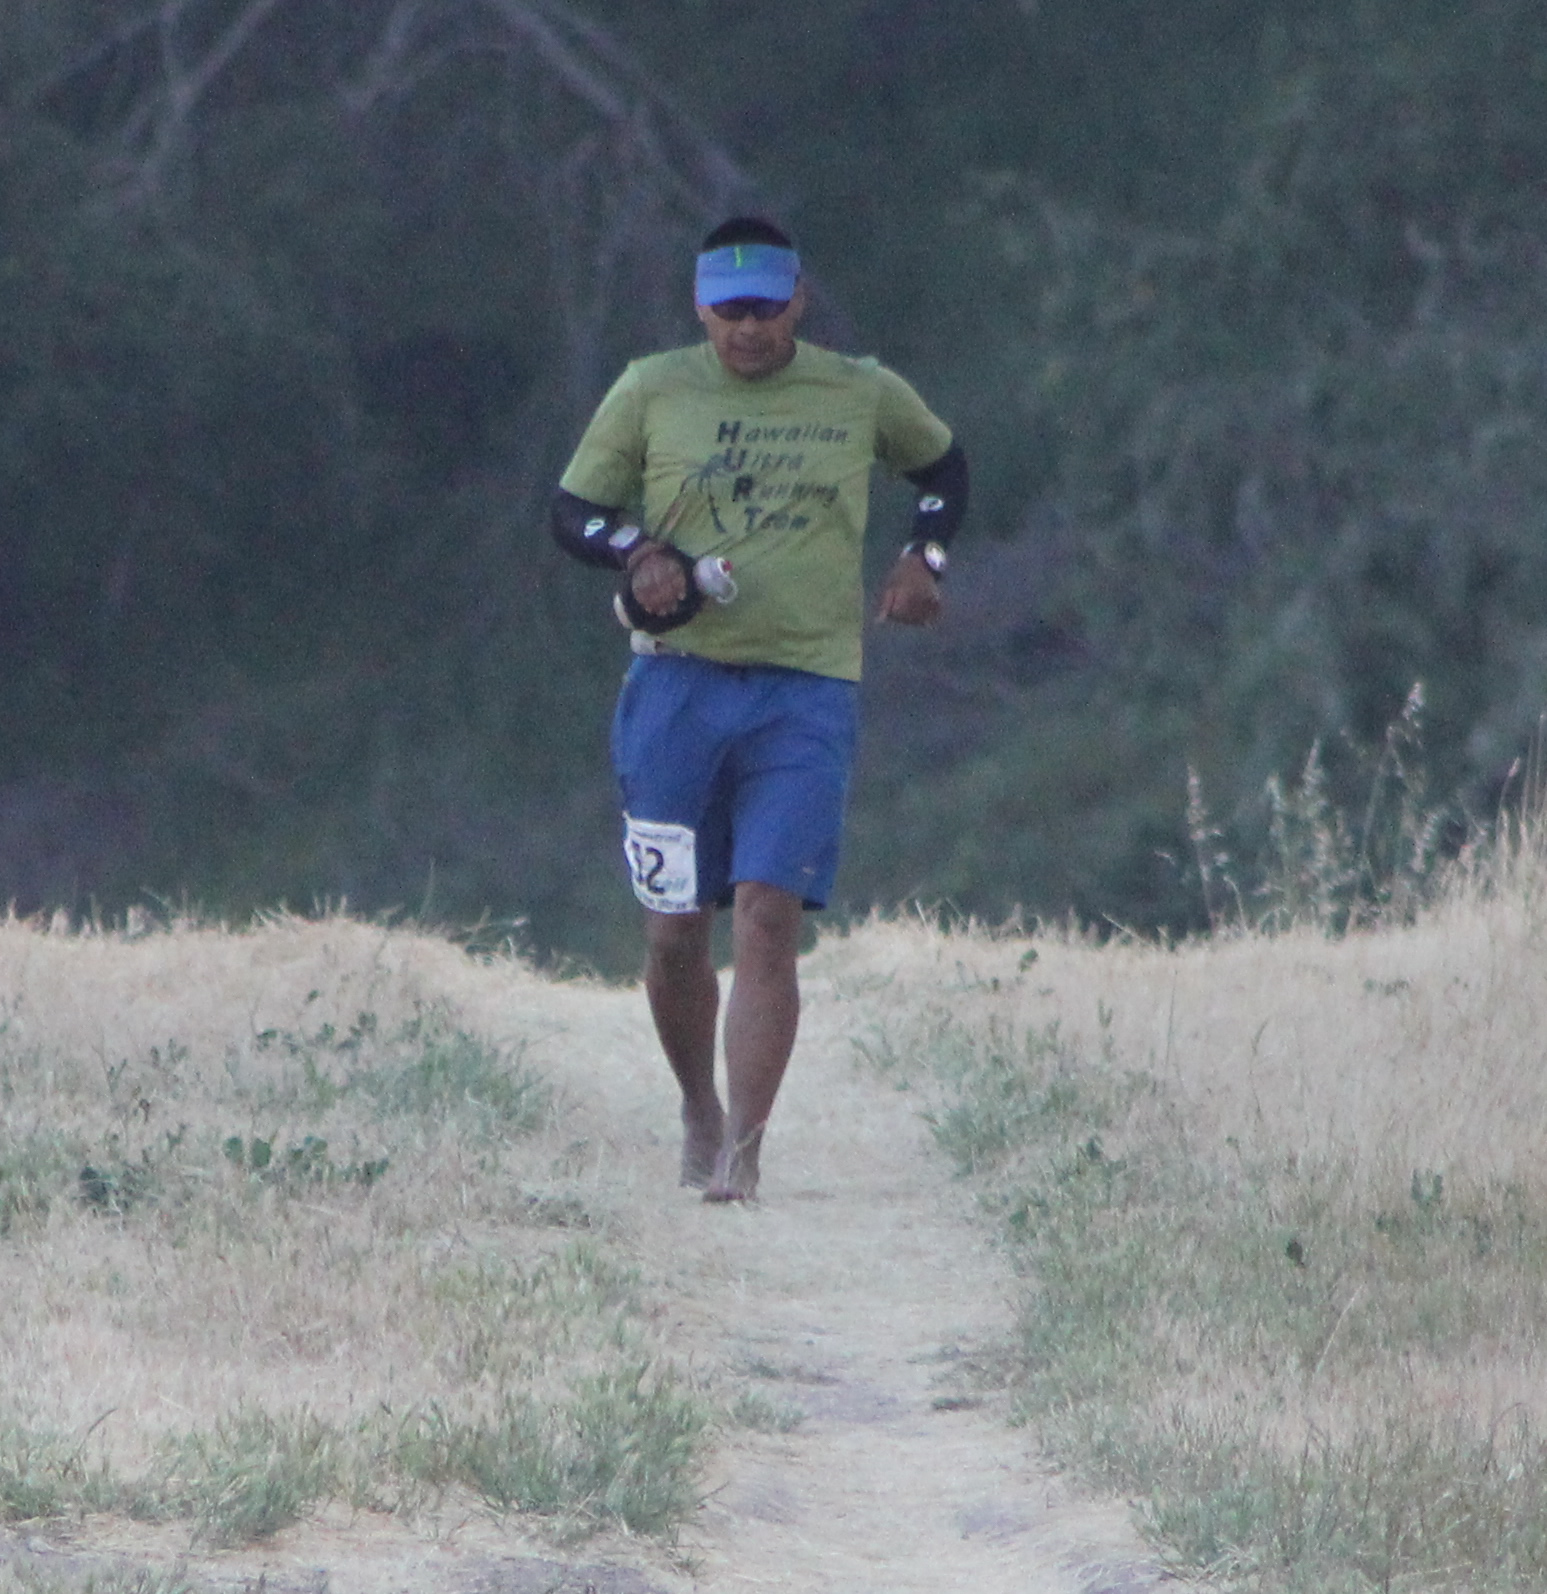 Mauricio Puerto (2011 May 13-15) Born to Run Ultramarathons, Los Olivos CA